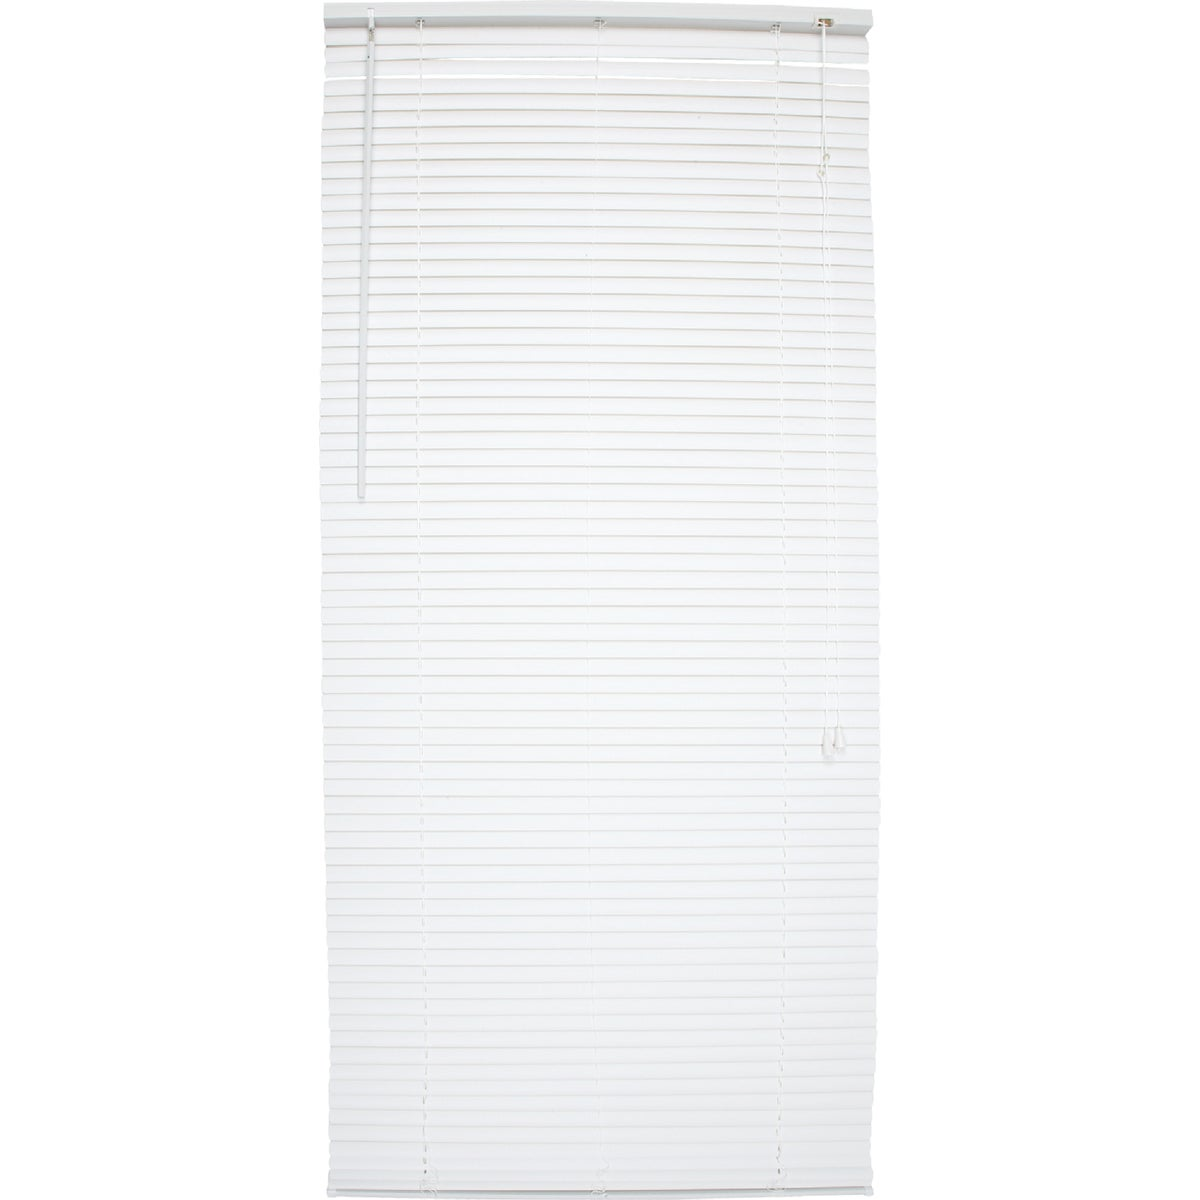 32X72 WHITE MINI BLIND - 615056 by Lotus Wind Incom